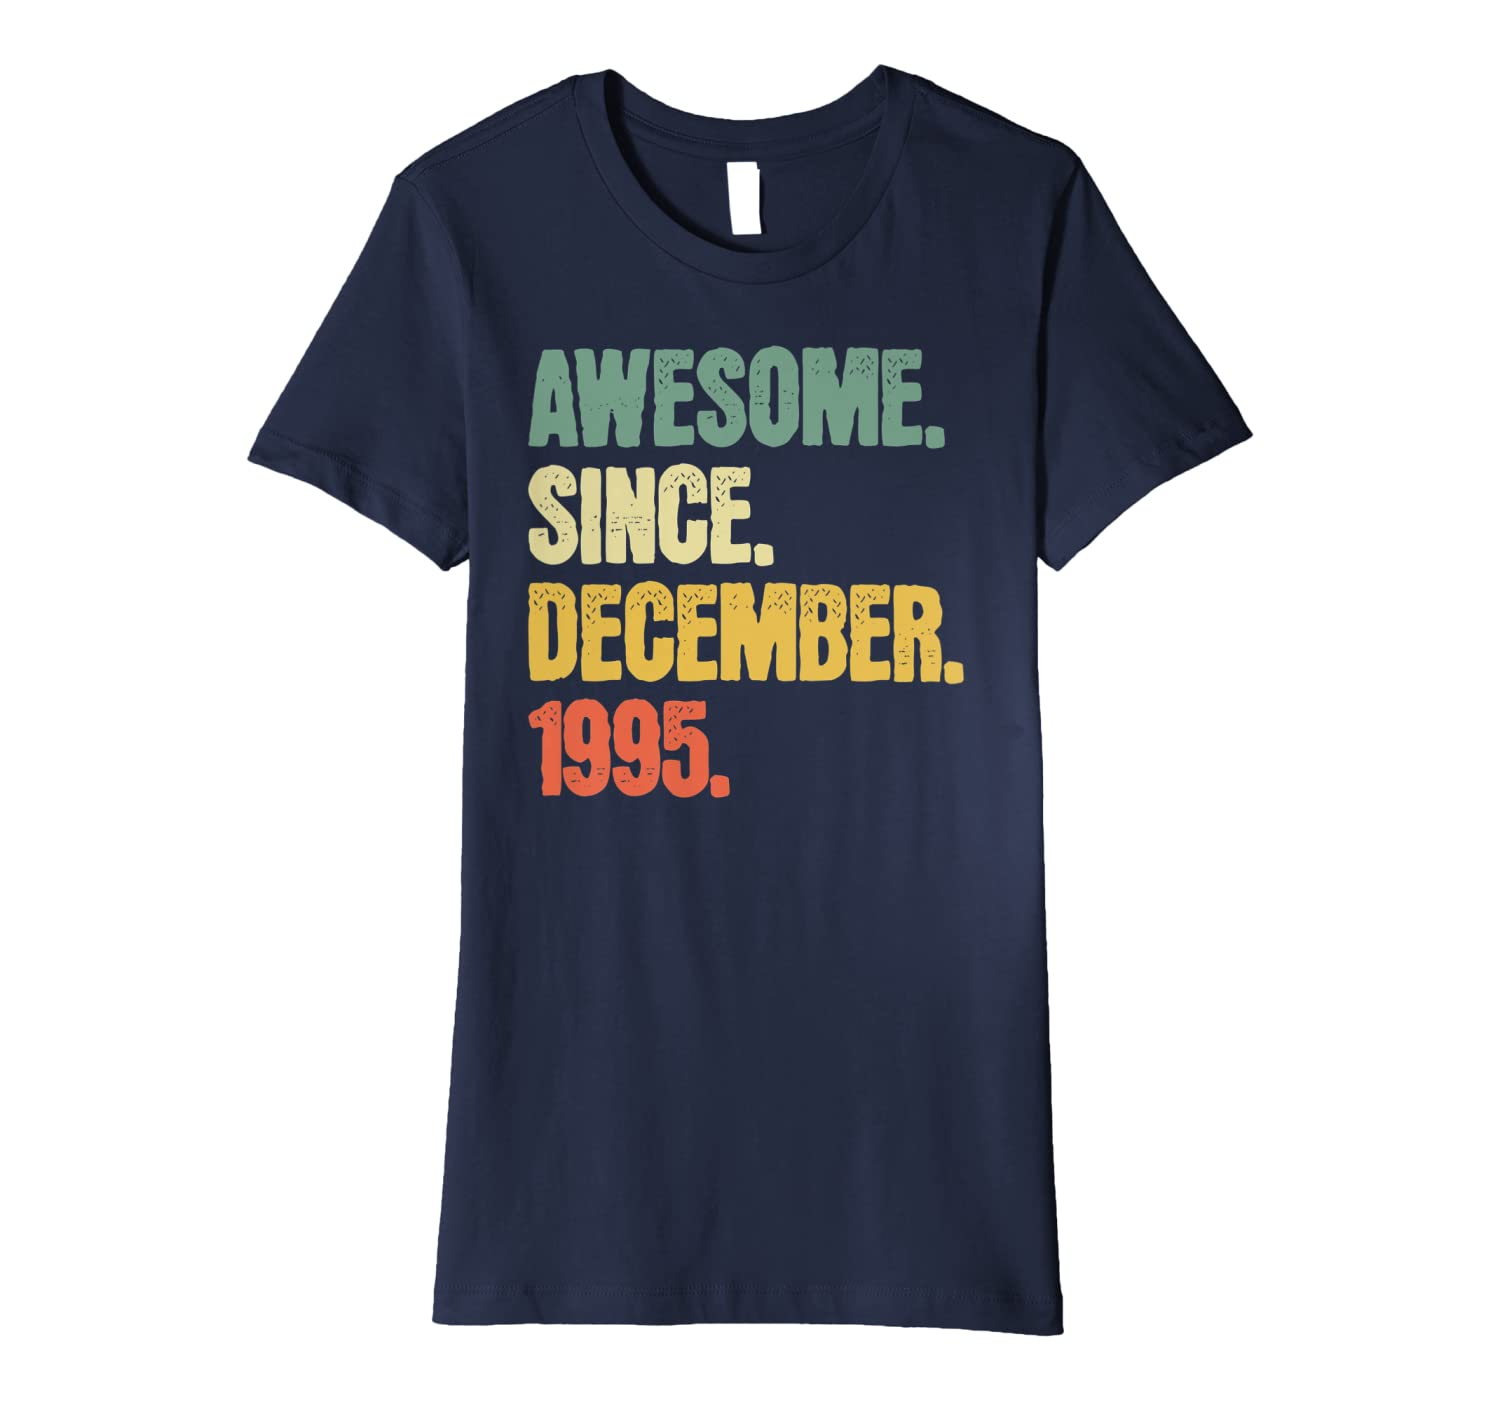 25 Year Old Birthday Gifts Shirt Awesome Since December 1995 Premium T-Shirt Women